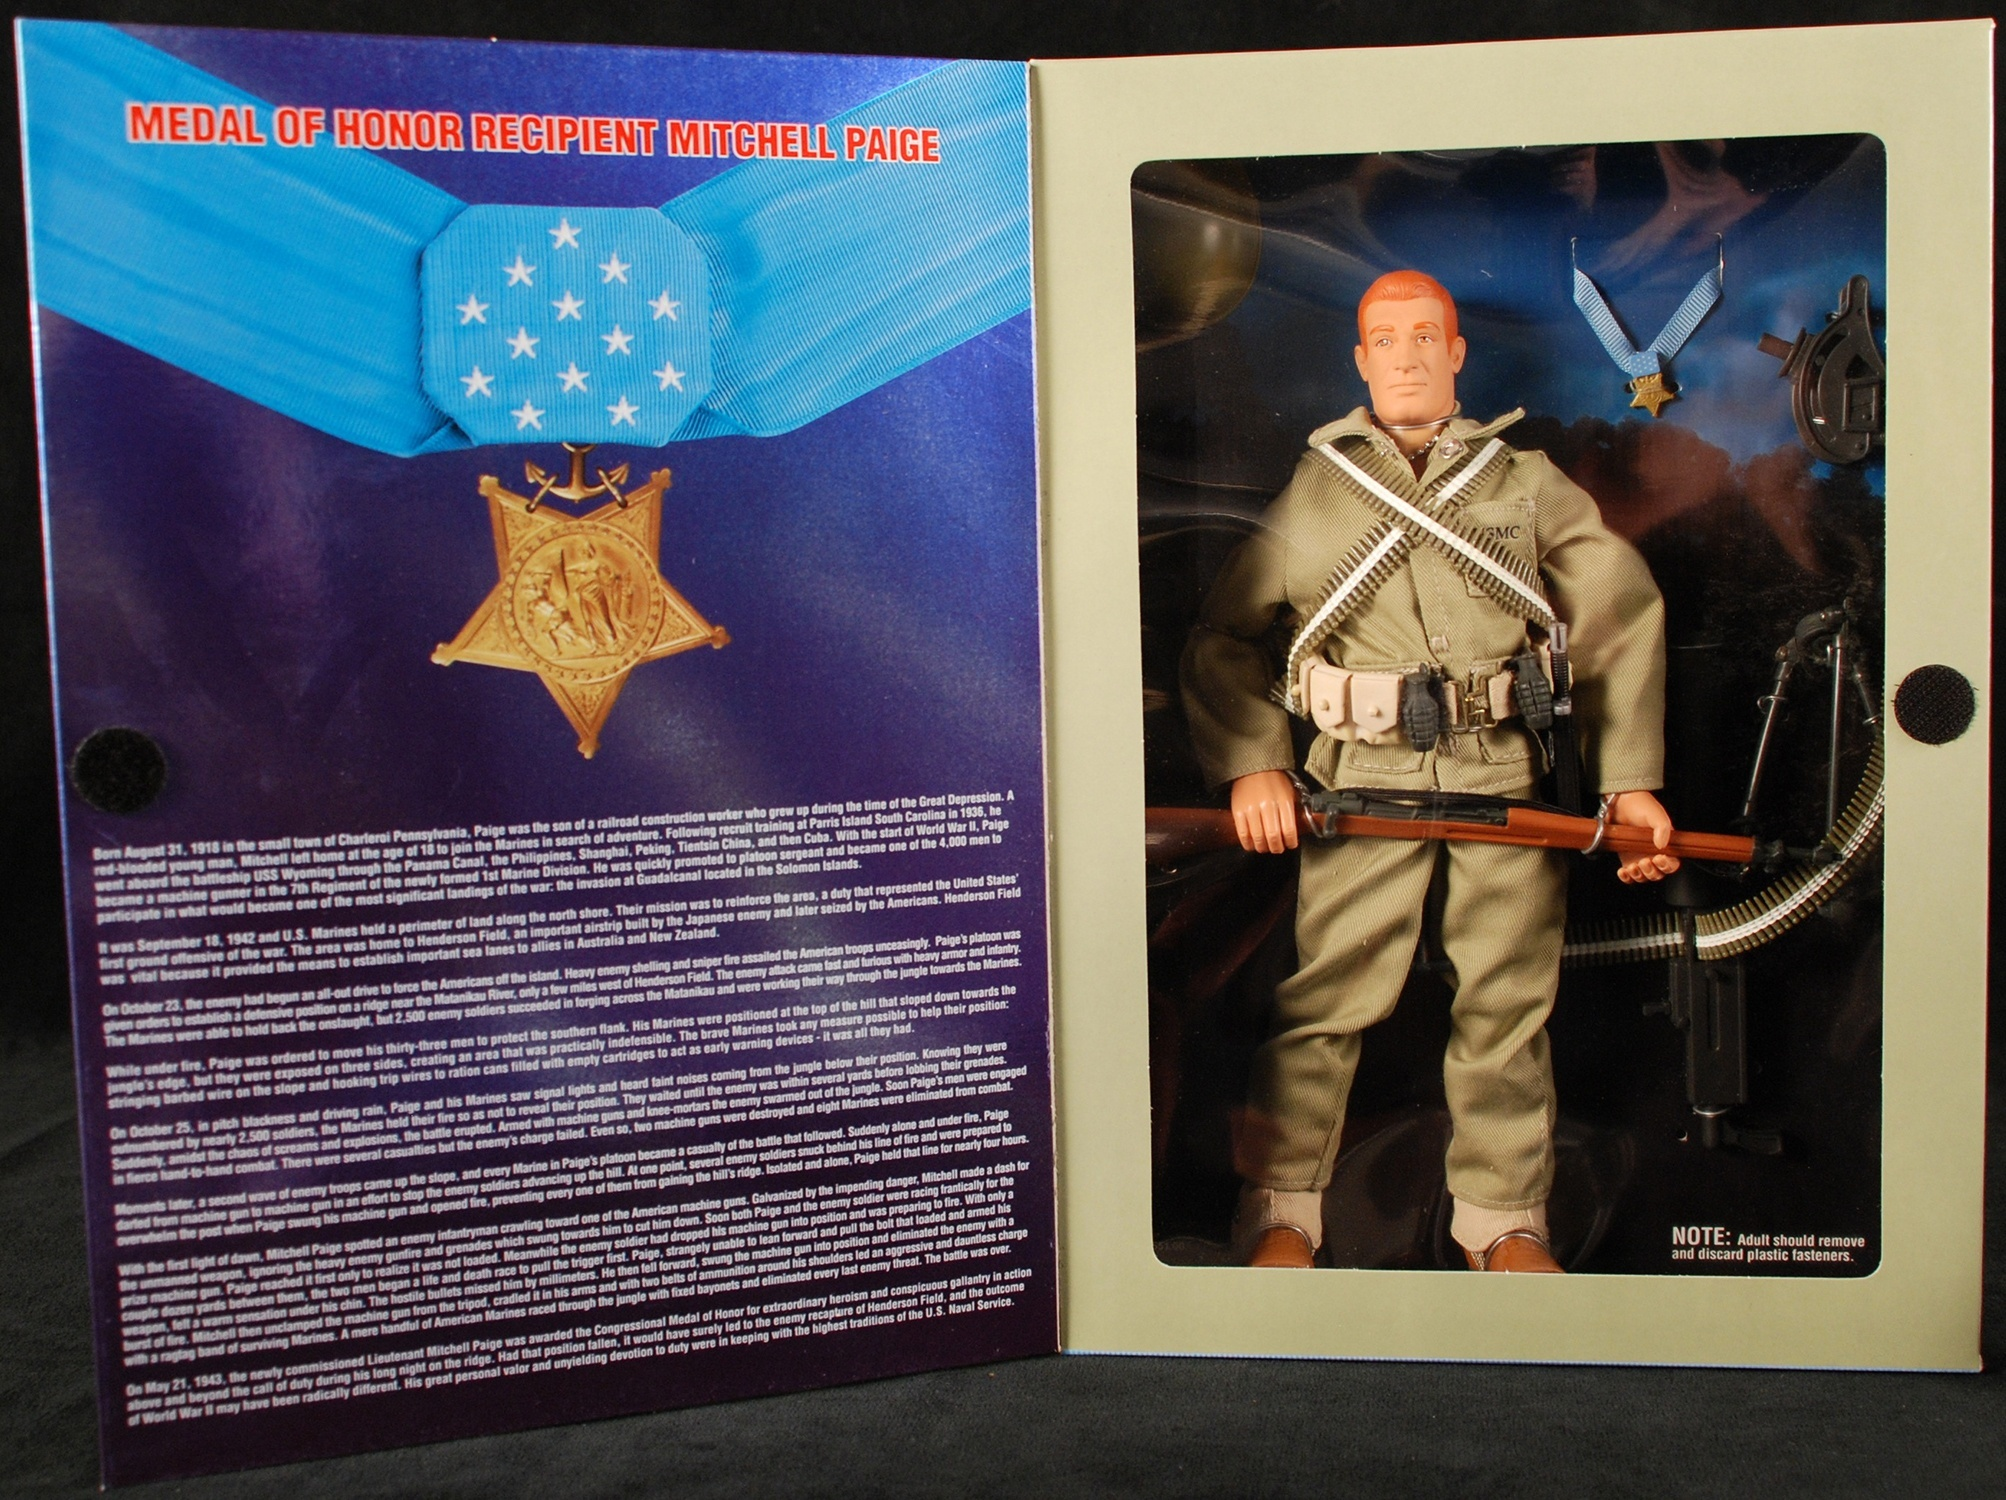 Mitchell Paige action figure, G. I. Joe Classic Collection, Hasbro, 1998. Gift of Kurt Groen. Heinz History Center museum collections.